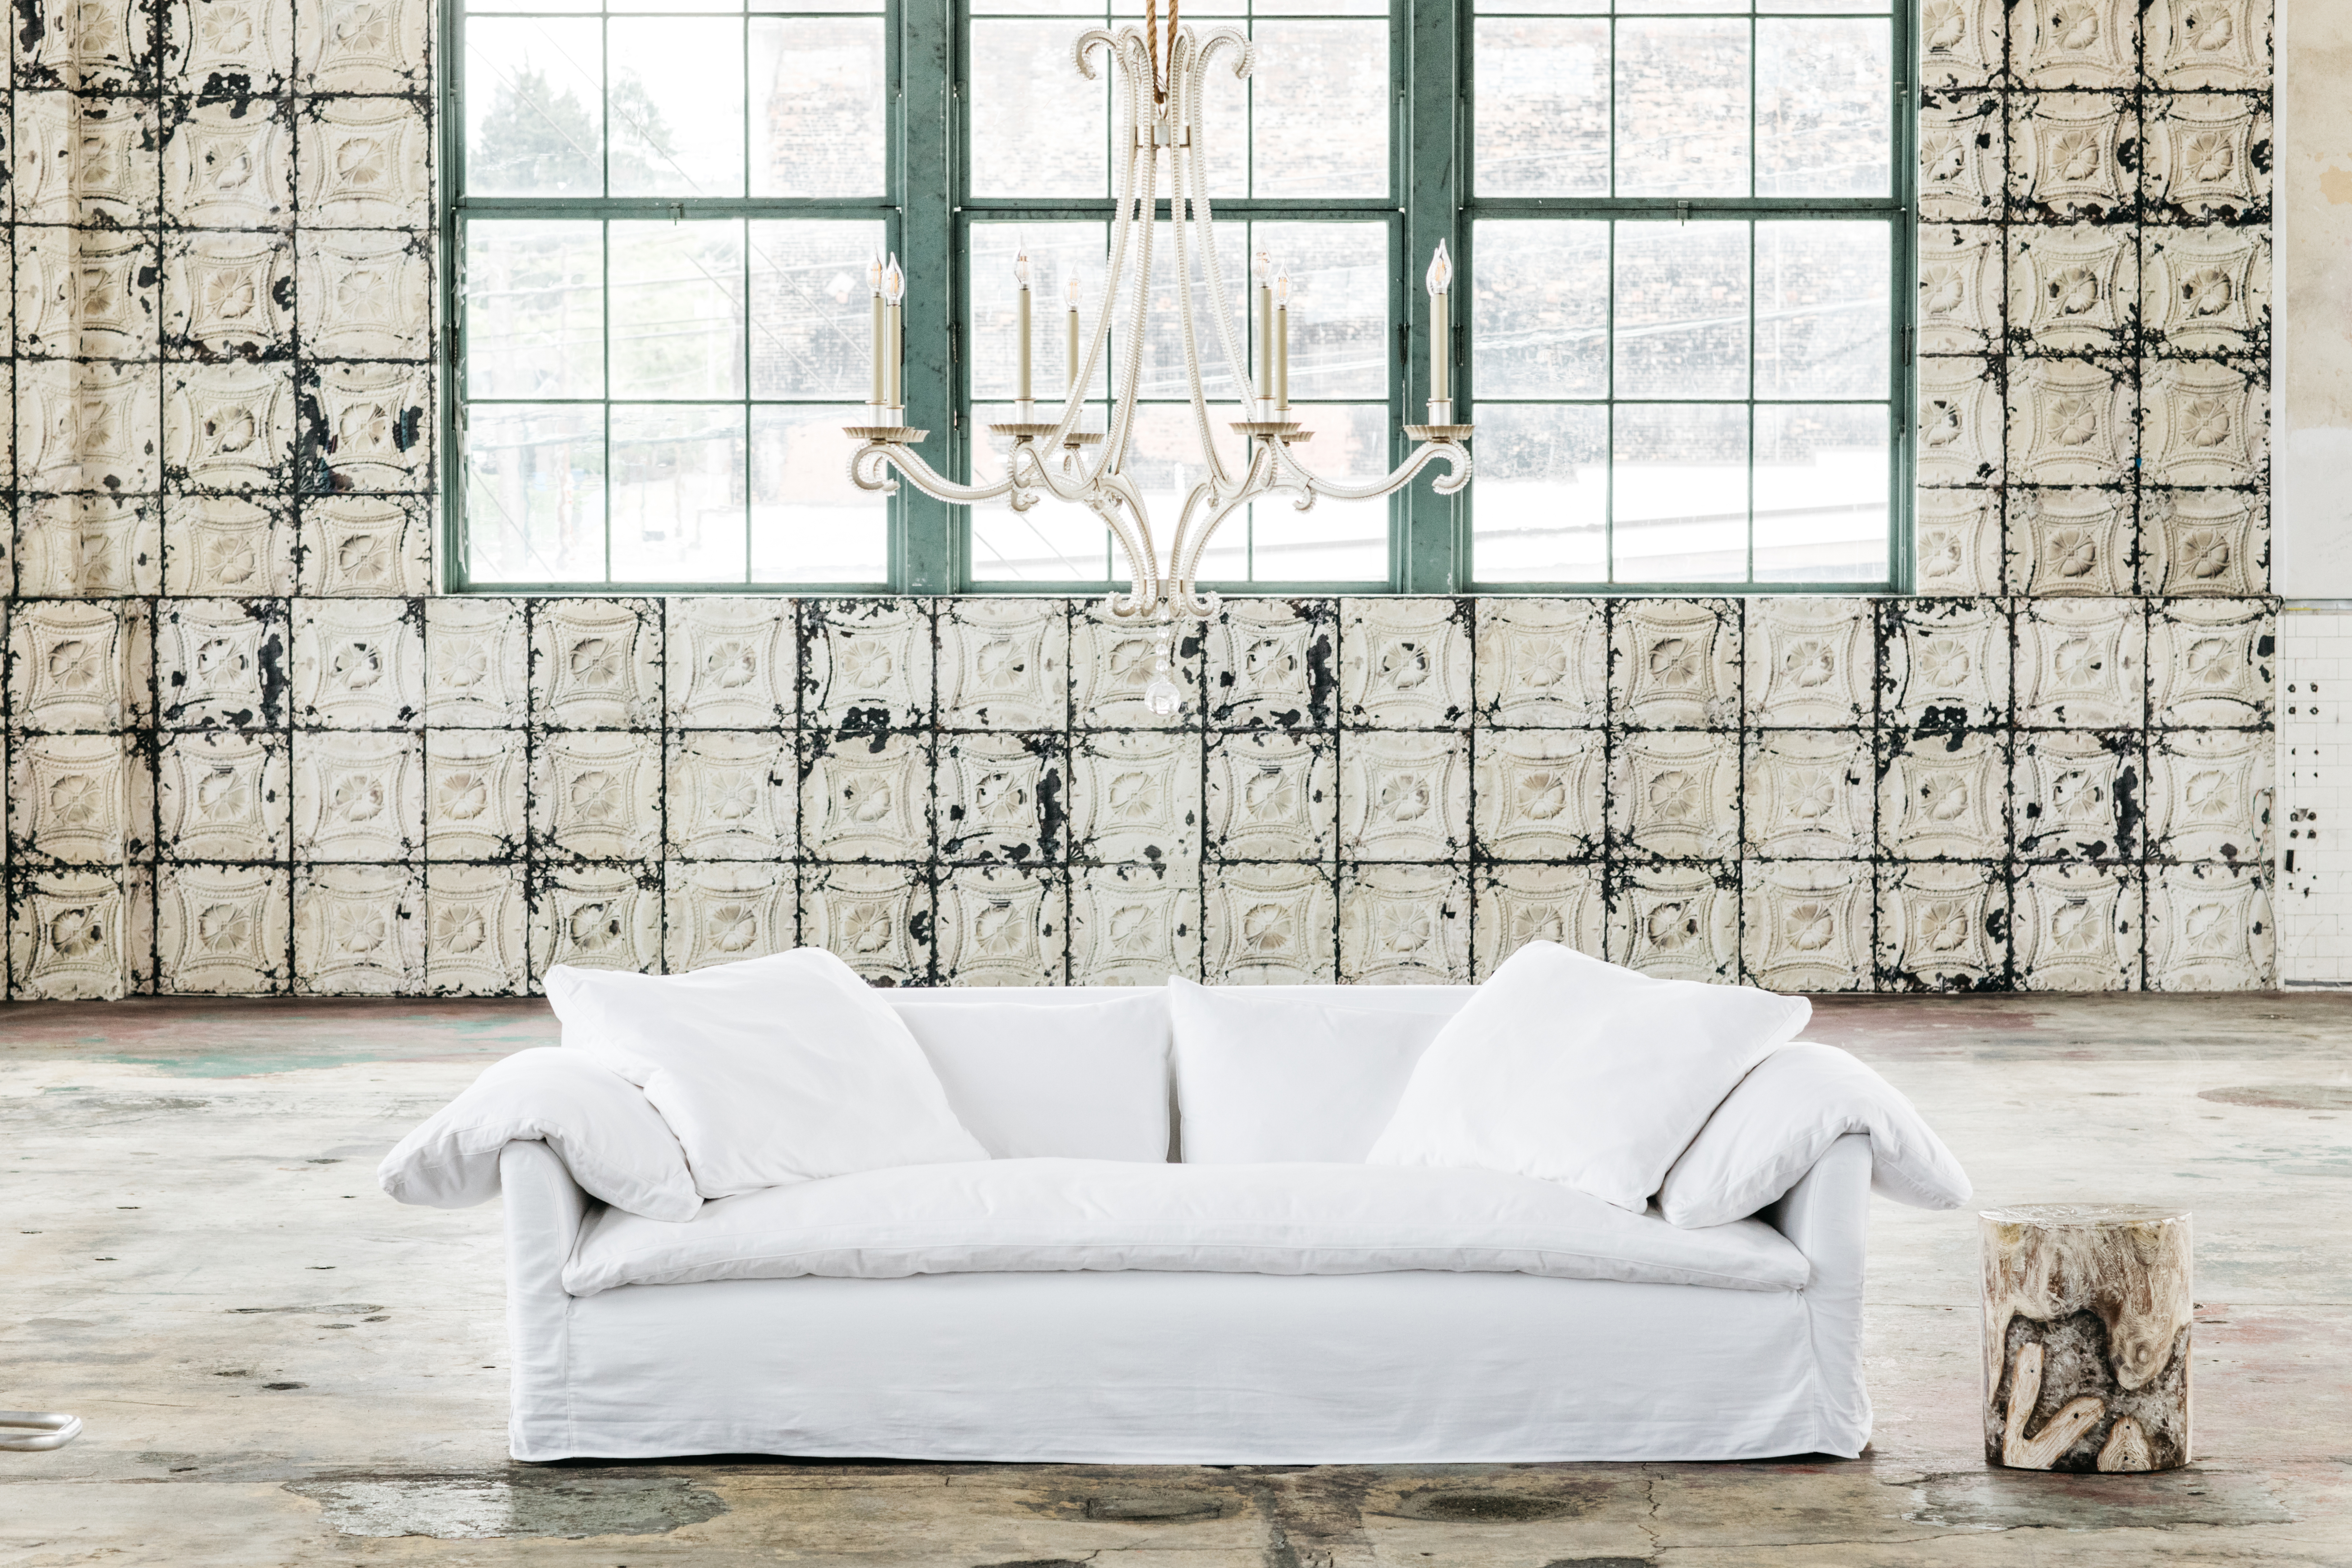 Popular Sofa Styles of 2018: designer tips to help you decide which ...